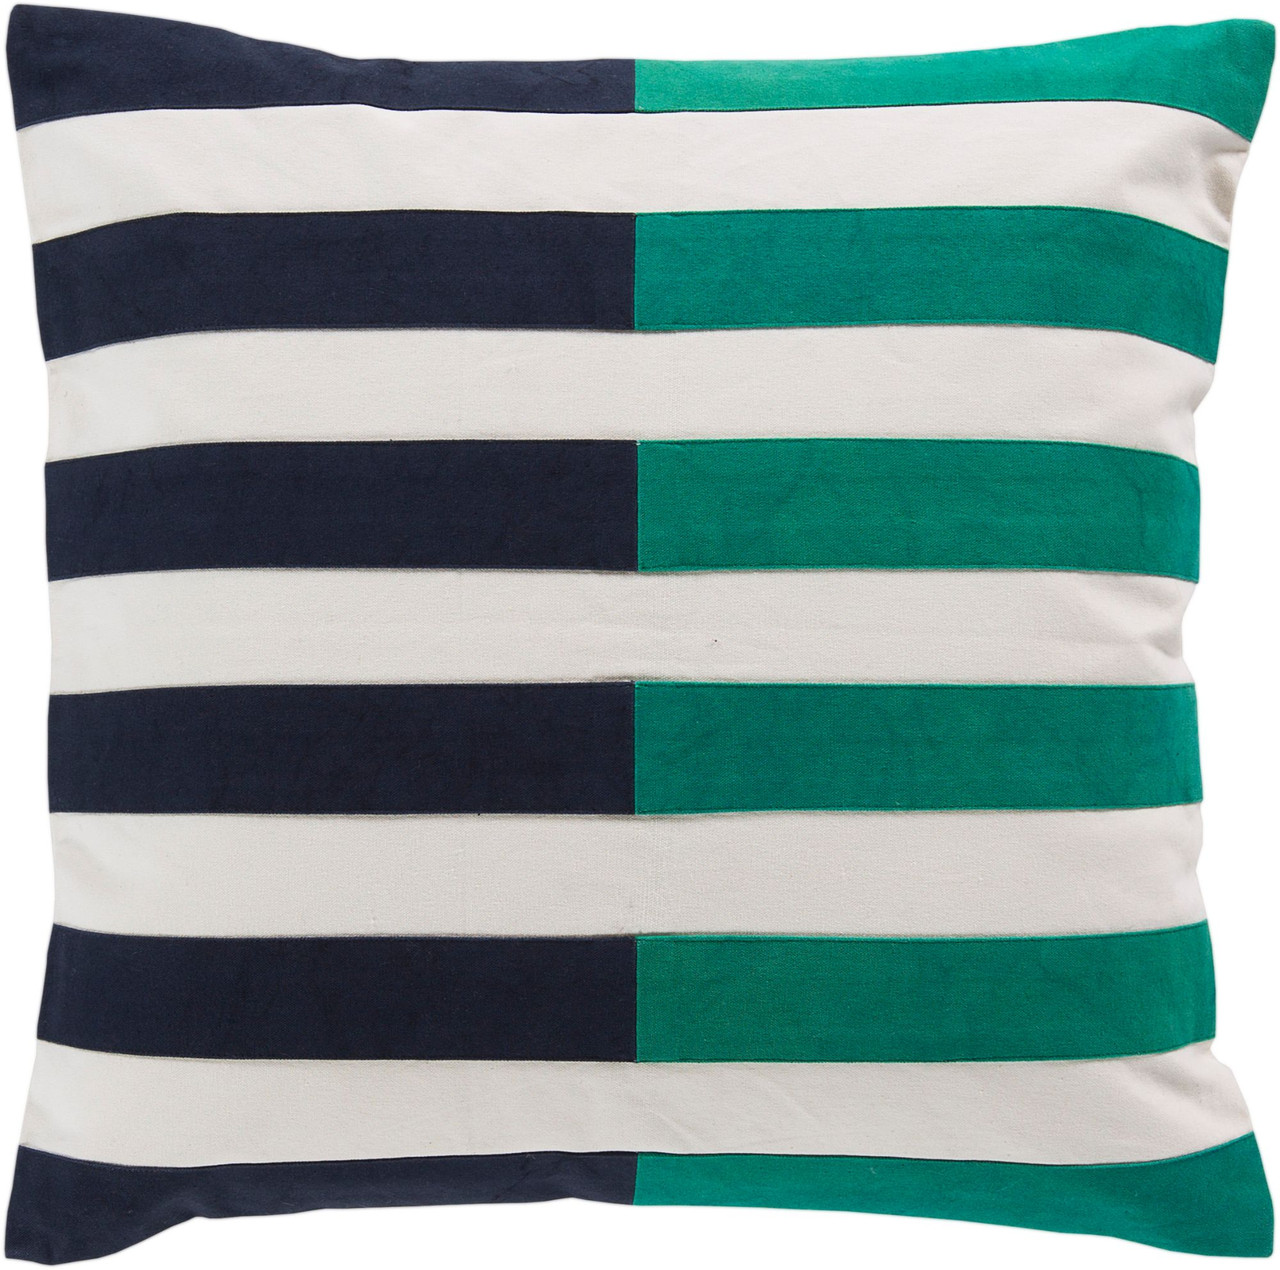 20 Navy Blue Emerald Green Striped Square Throw Pillow Cover Christmas Central